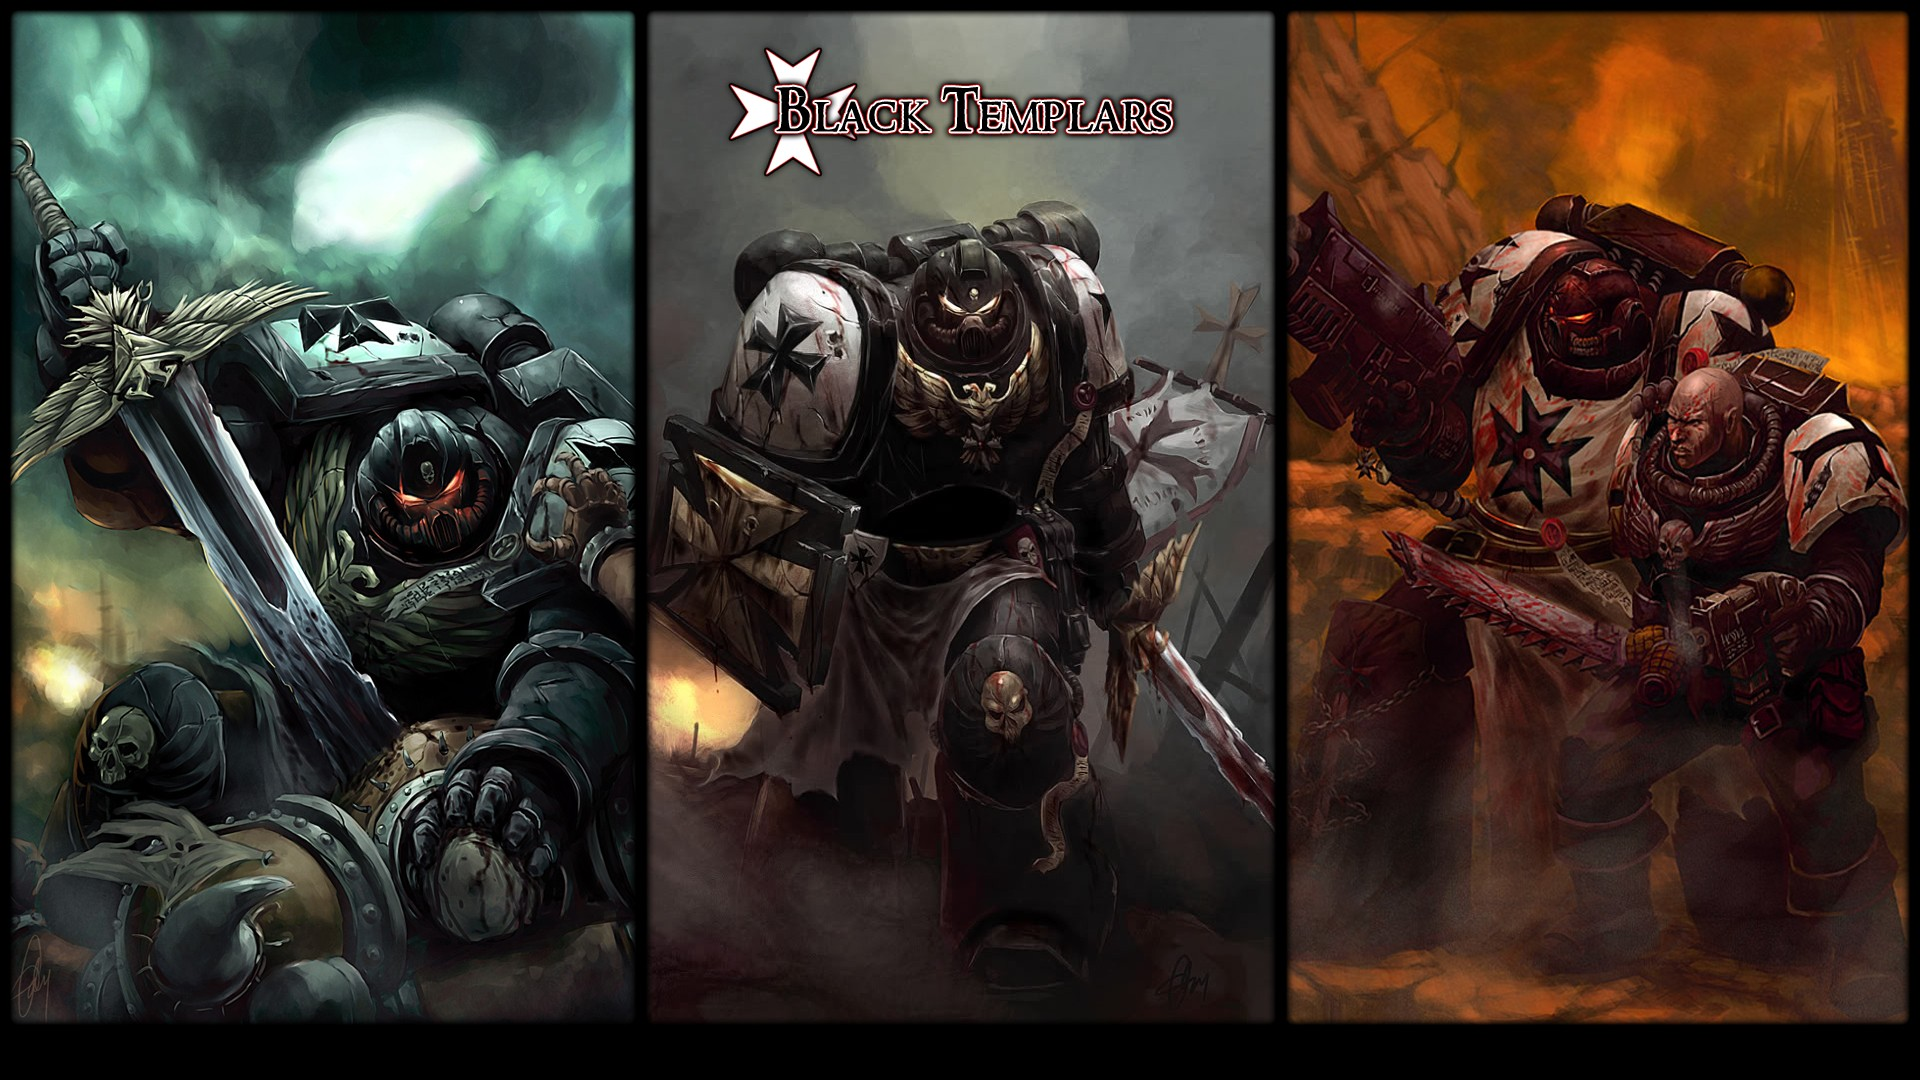 Warhammer Hd Wallpaper Background Image 1920x1080 Id 204266 Wallpaper Abyss